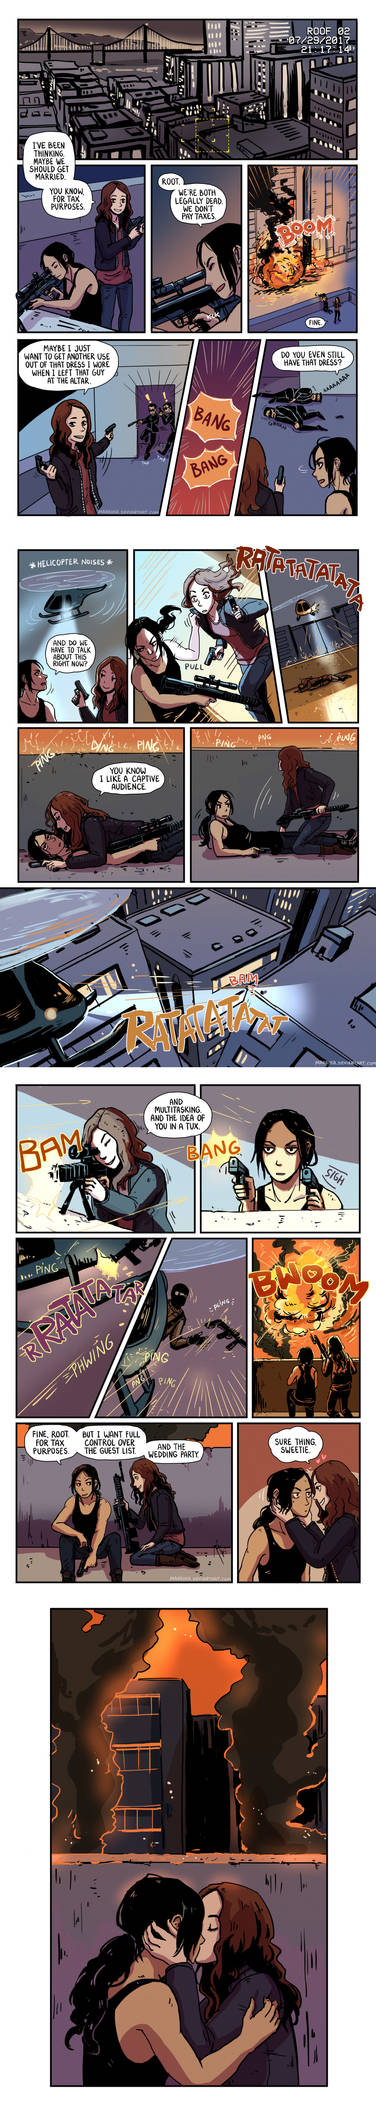 Person of Interest - Root and Shaw comic 4